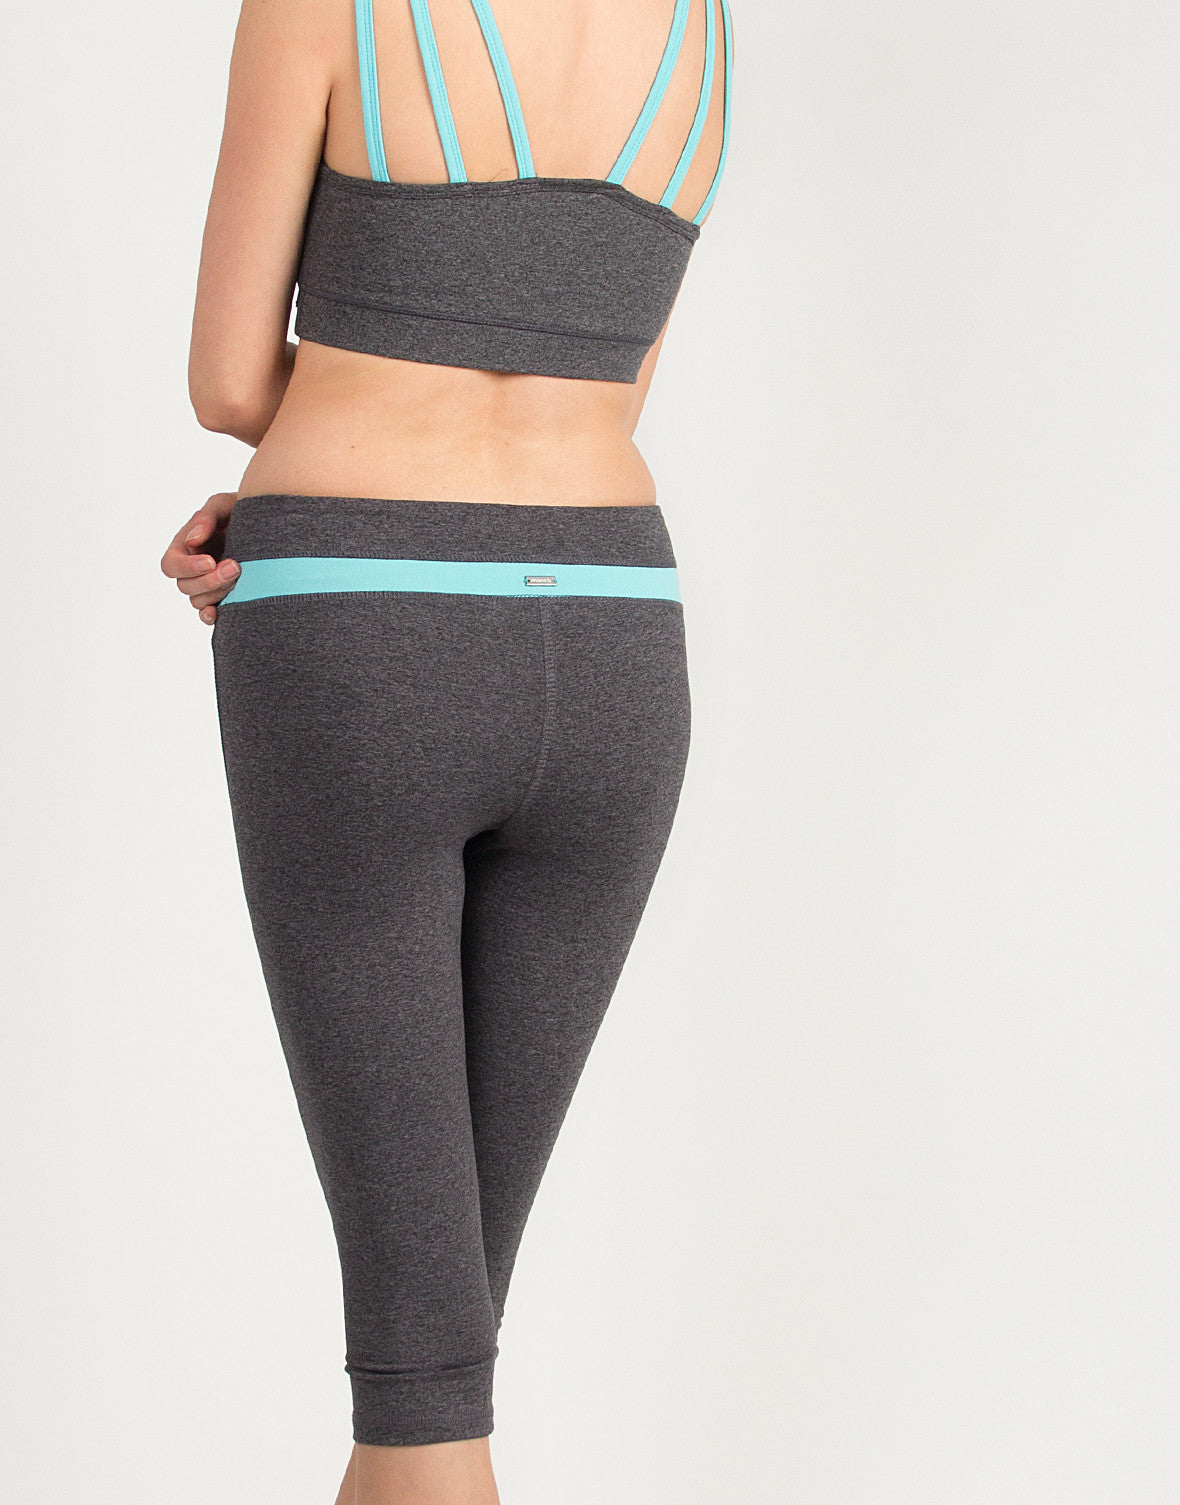 Mint Strip Yoga Capri Pants - 2020AVE